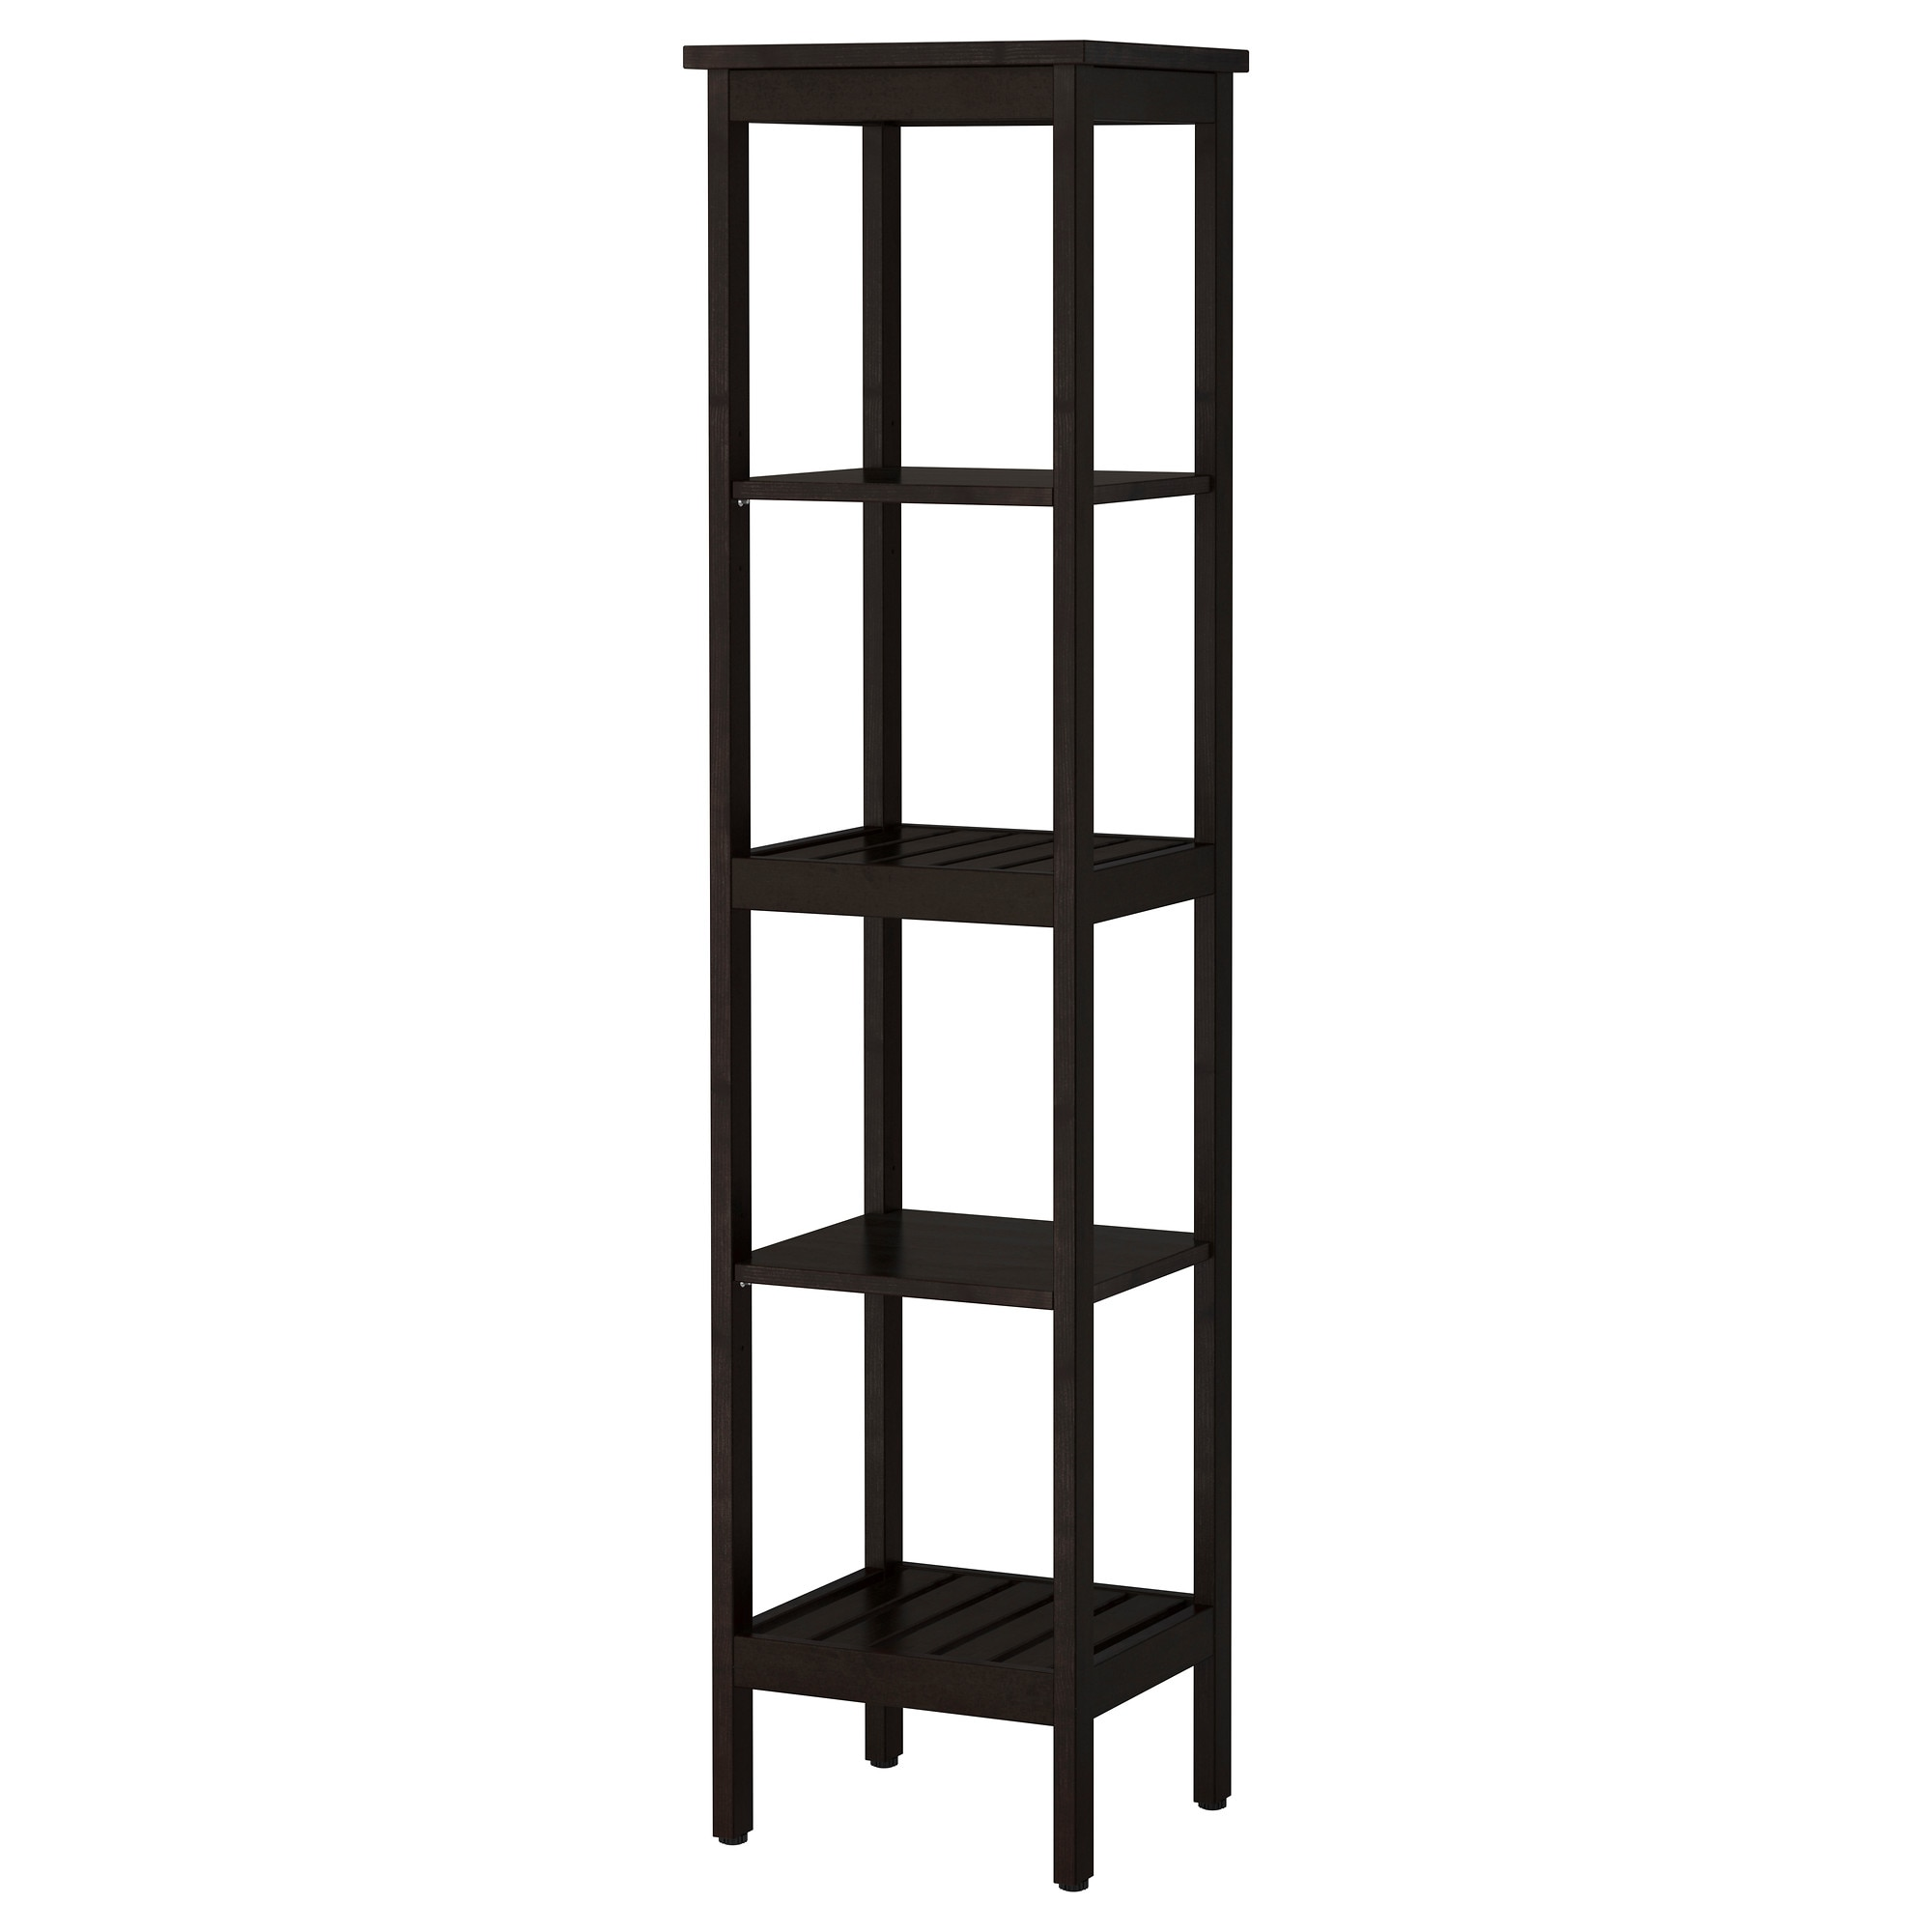 Charmant HEMNES Shelving Unit   Black Brown Stain   IKEA